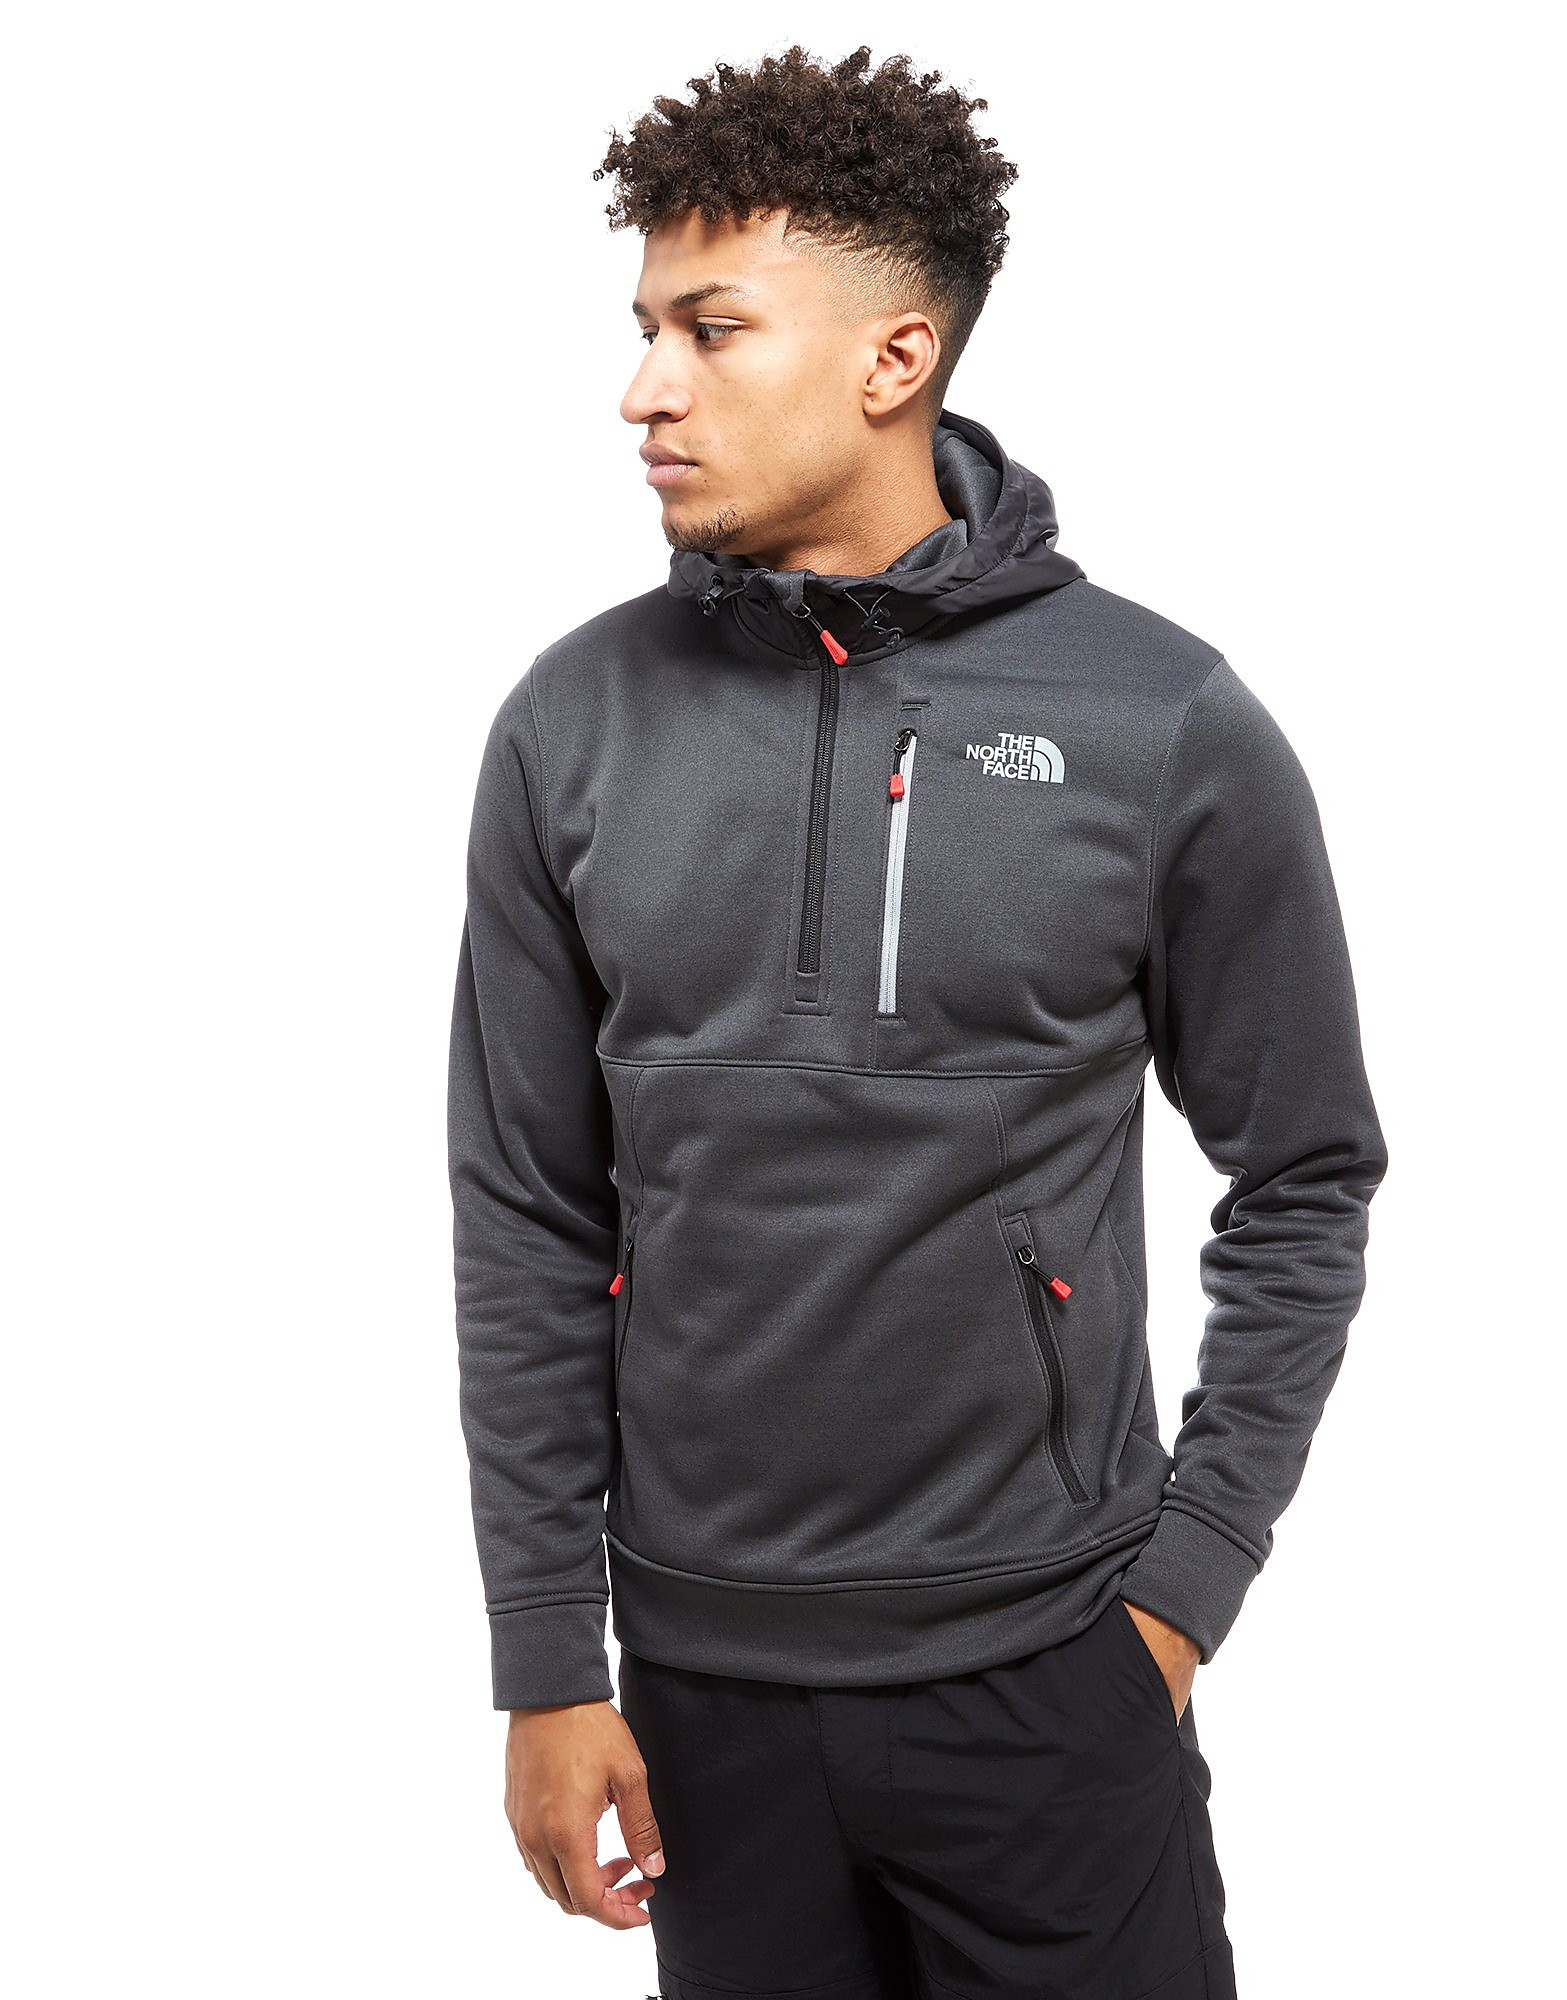 The North Face Sweat Mittelegi 1/4 Zip